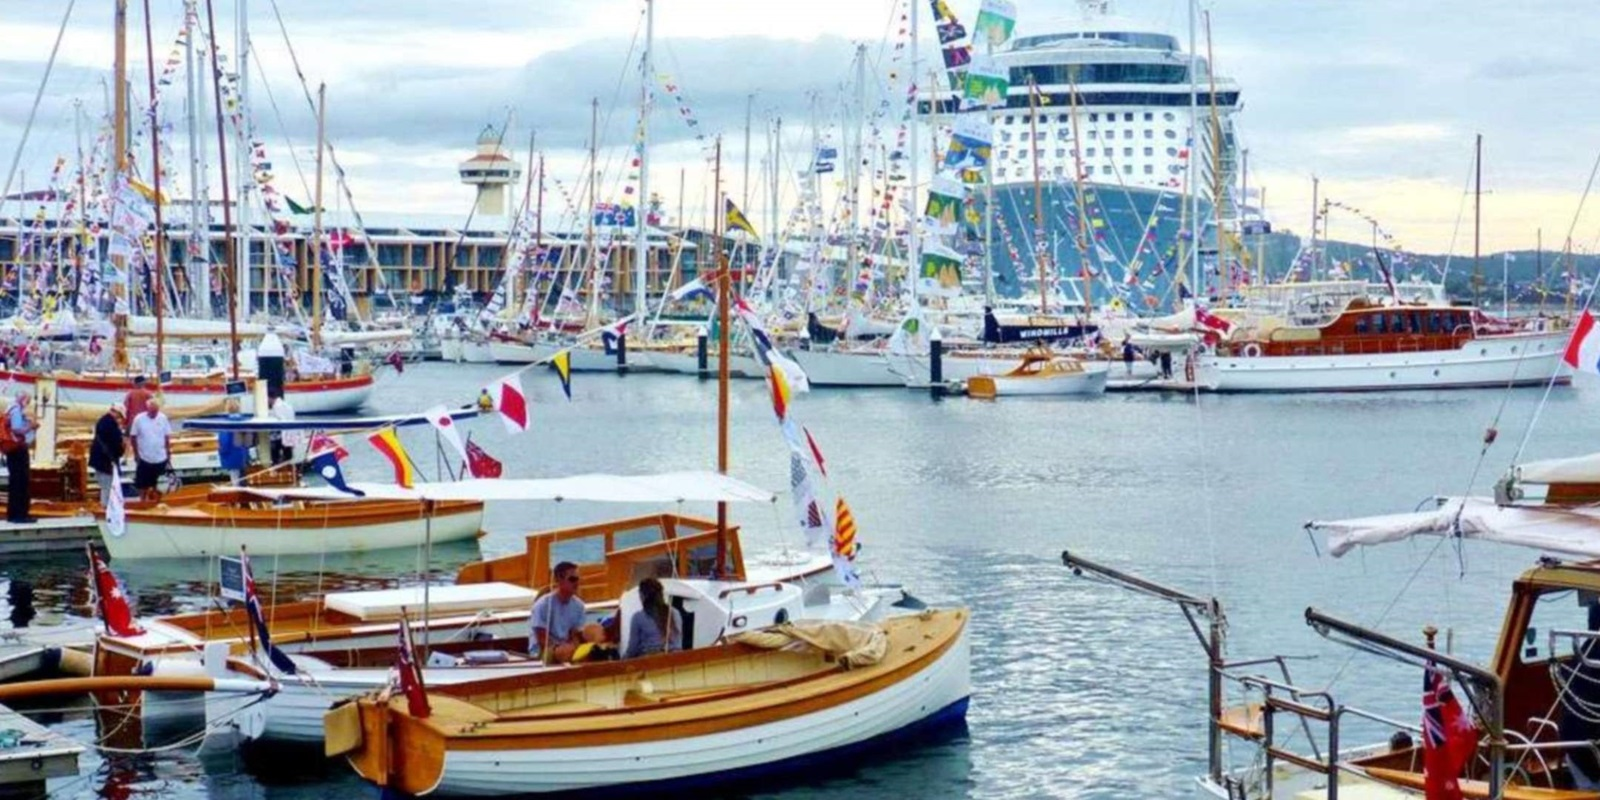 Terrific Times In Tasmania At The Australian Wooden Boat Festival